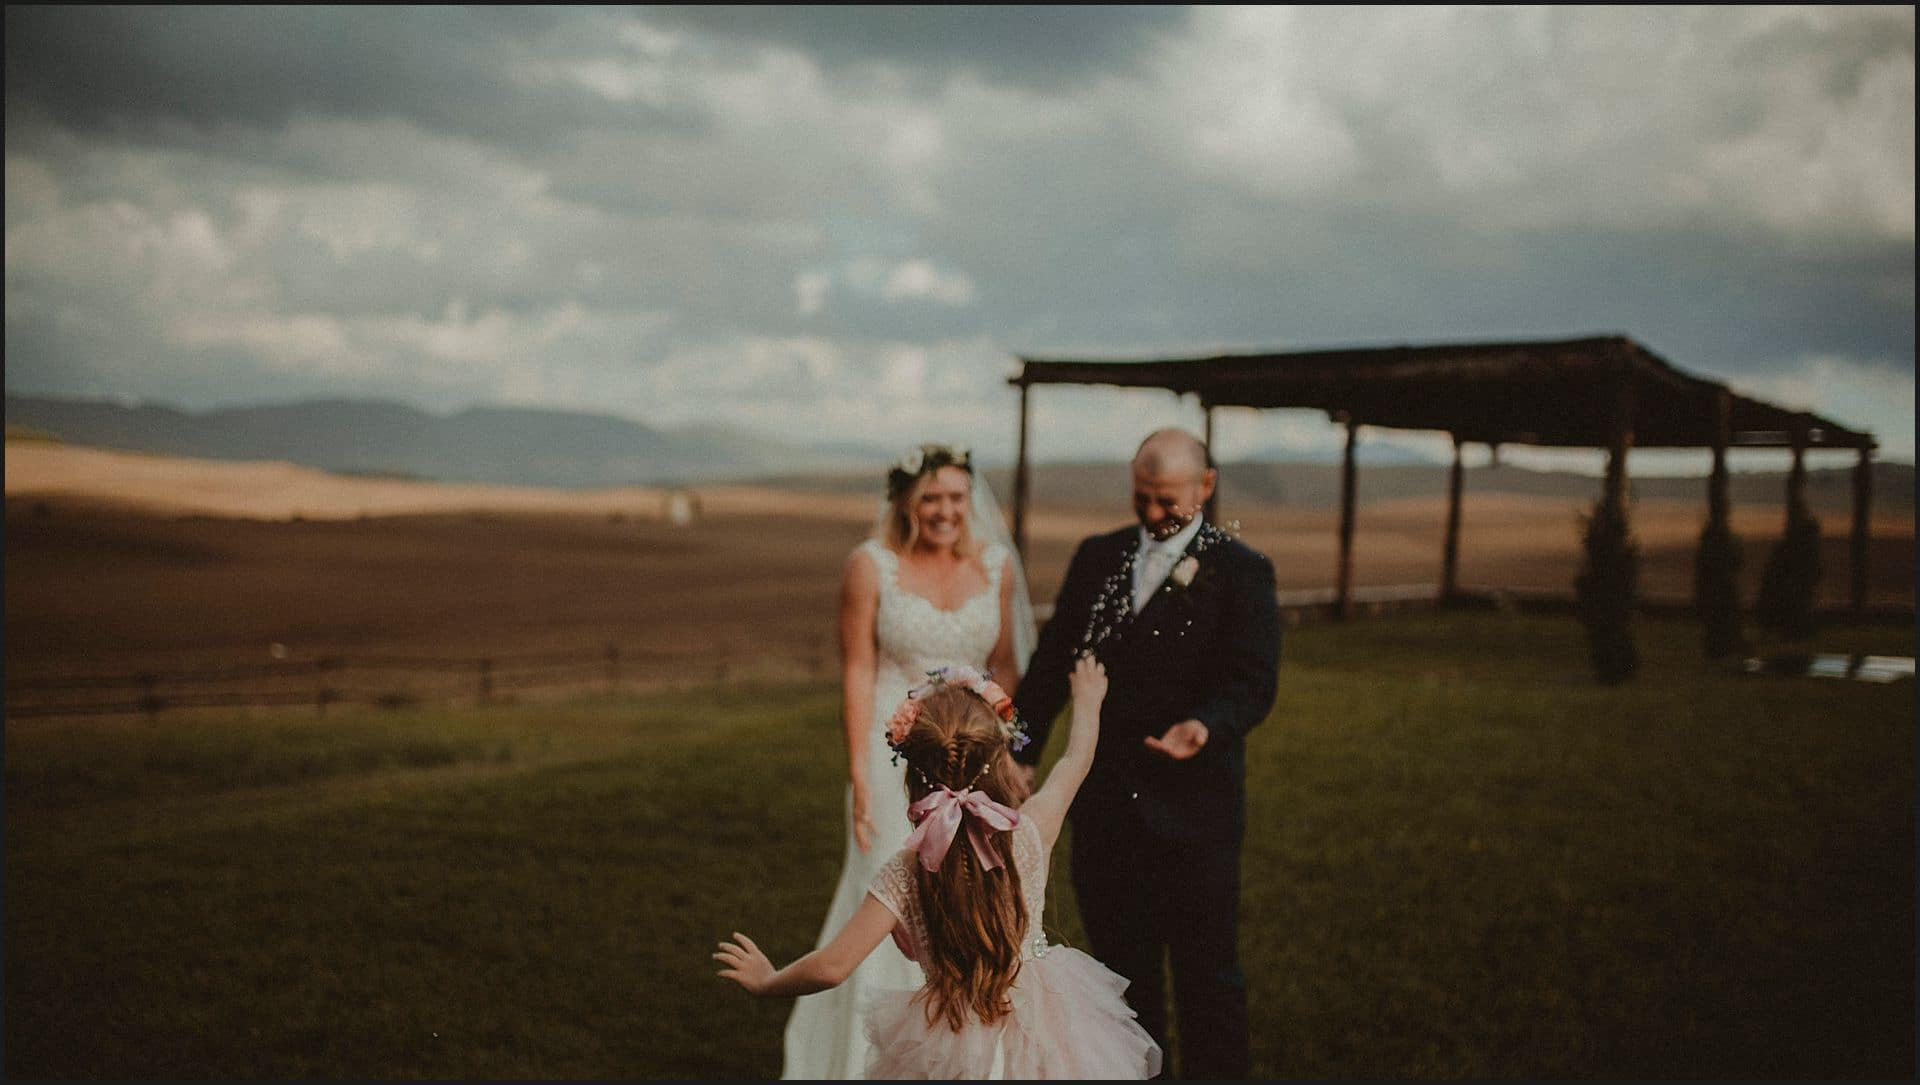 rice toss, bride and groom, australian couple, intimate wedding, elopement, val d'orcia, bridemaid